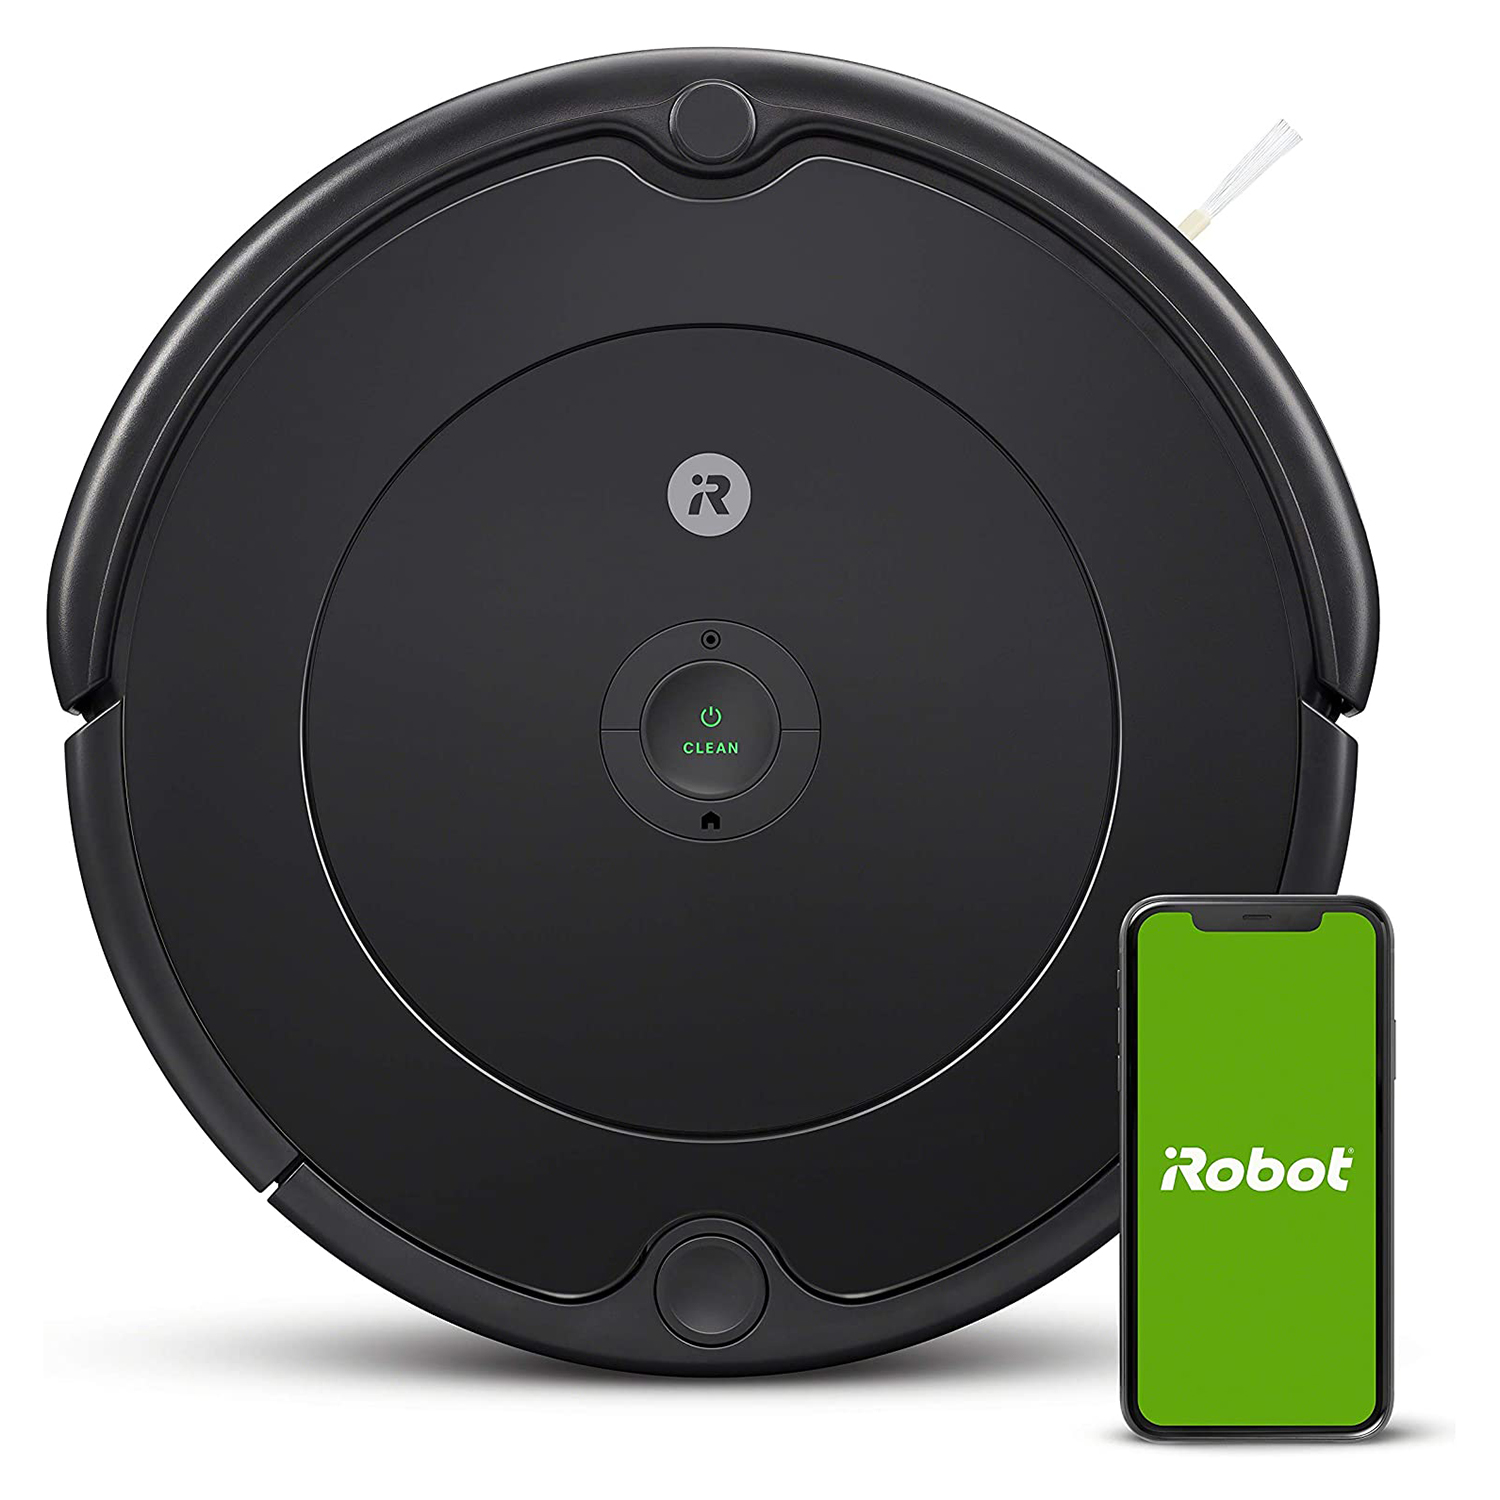 iRobot Roomba 692 Robot Vacuum-Wi-Fi Connectivity Amazon Prime Day 2020 Deal